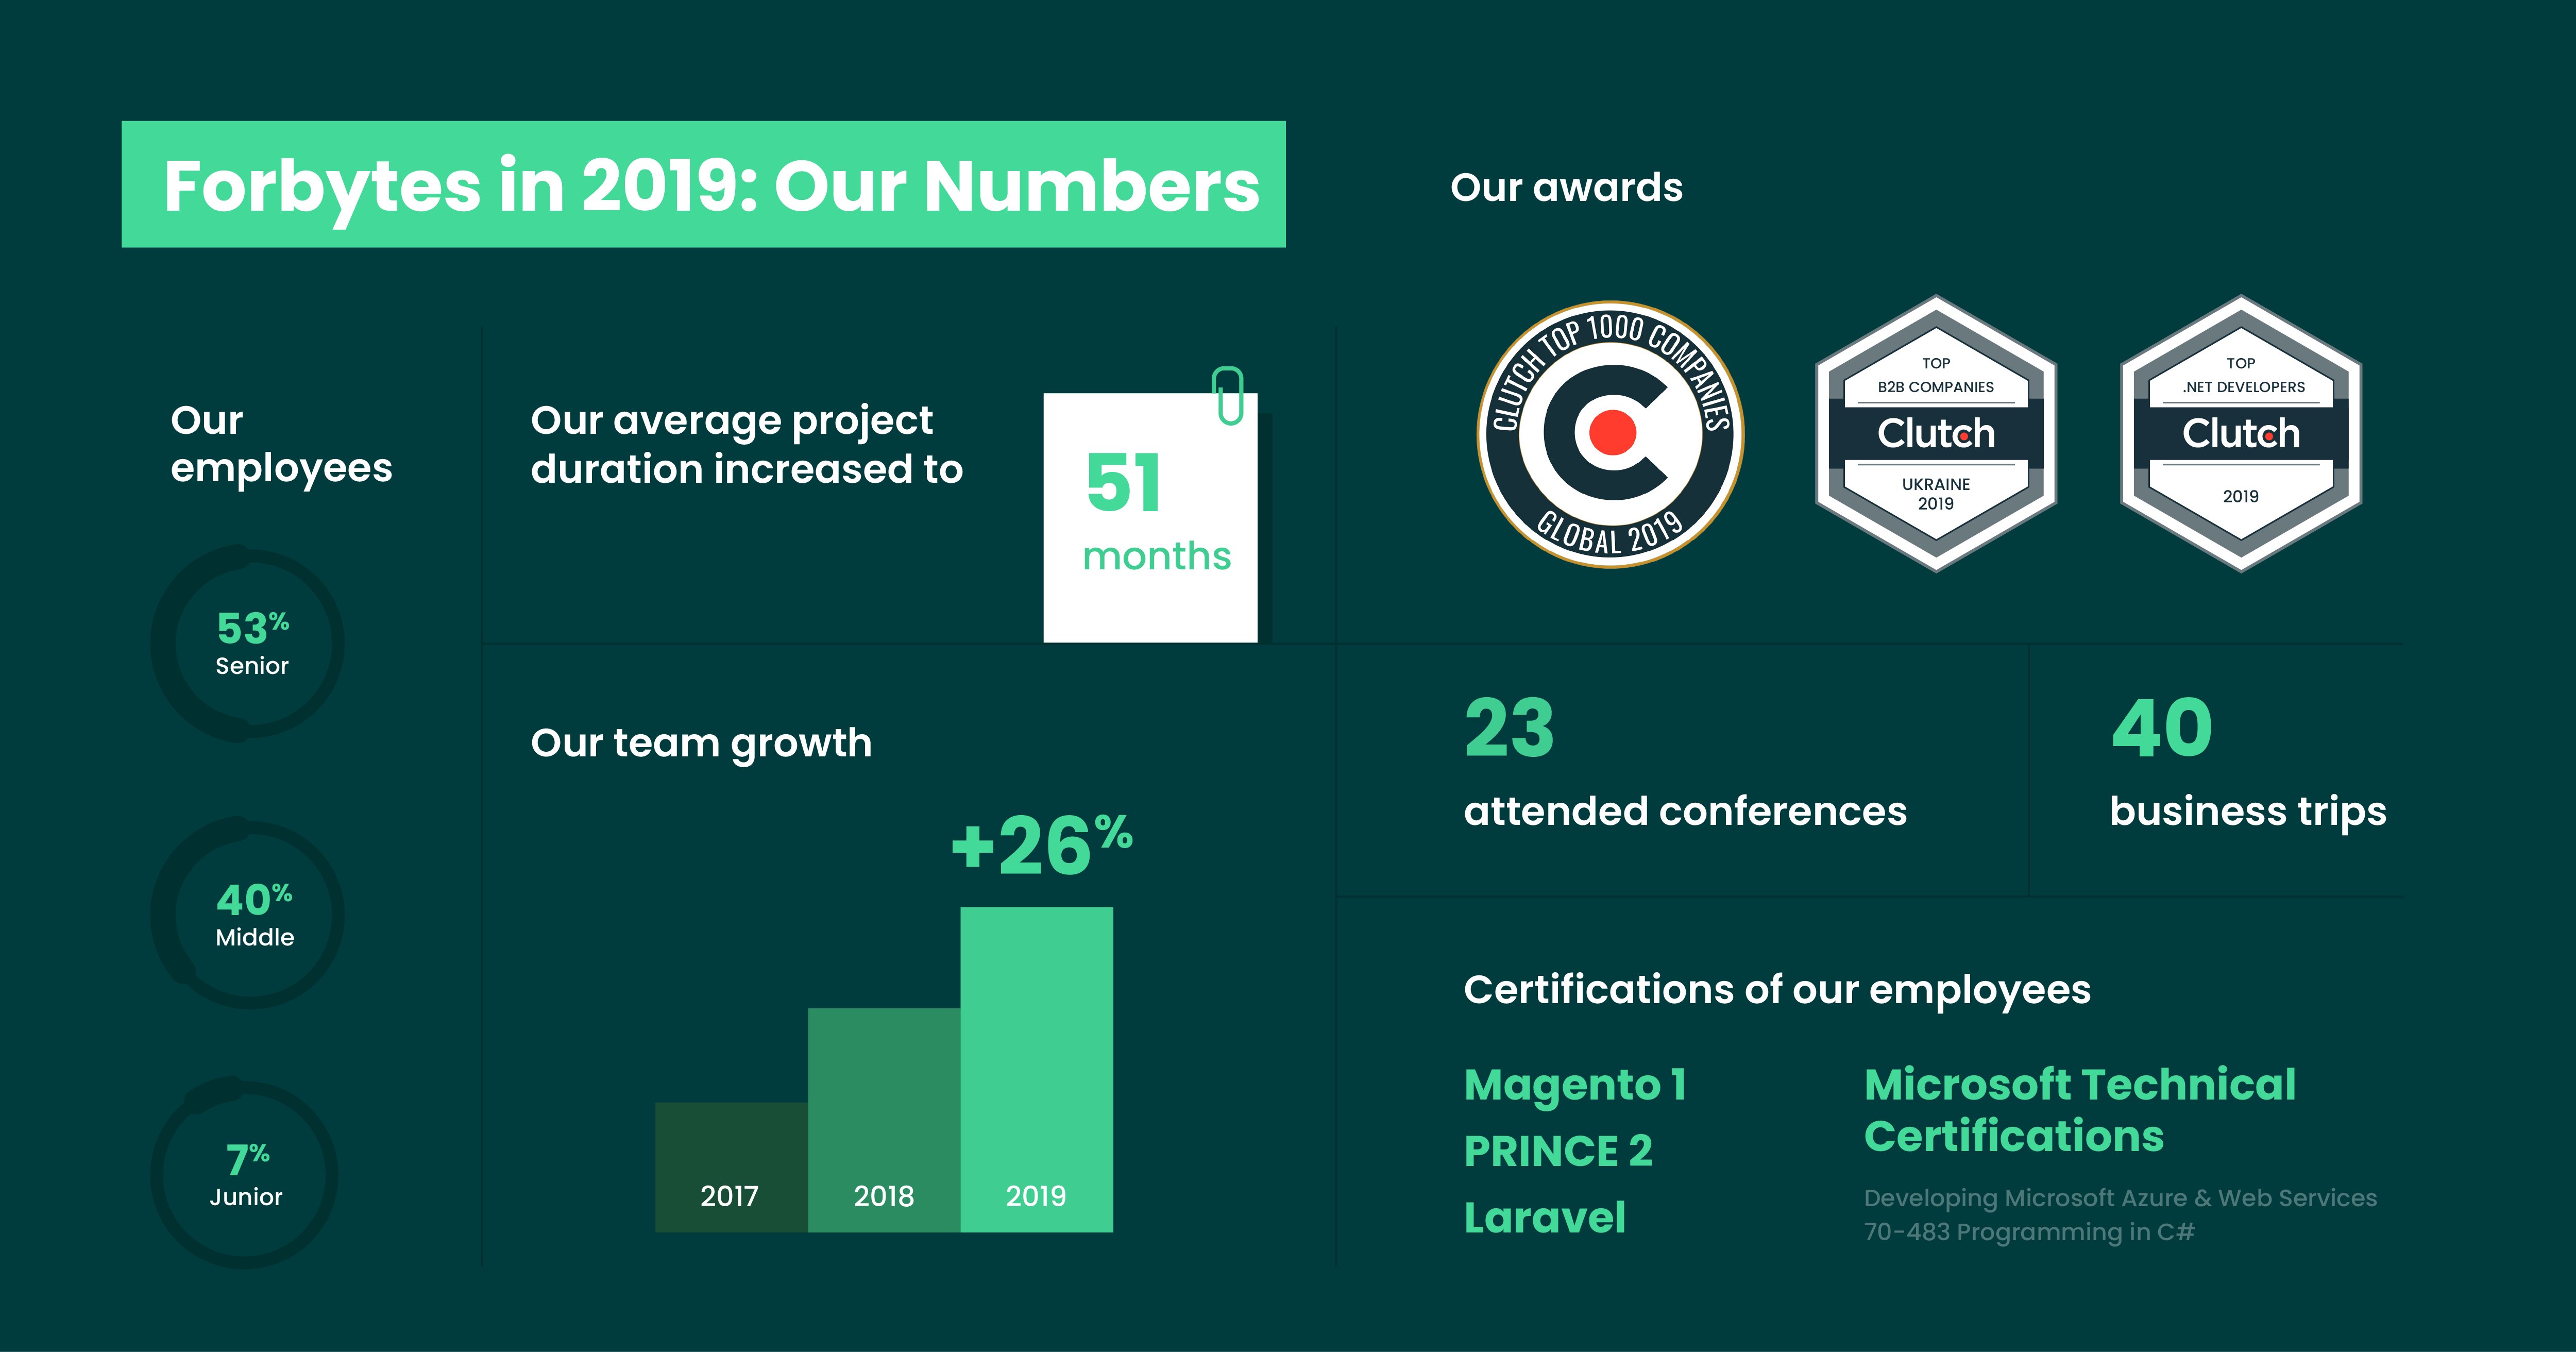 Forbytes in numbers infographic